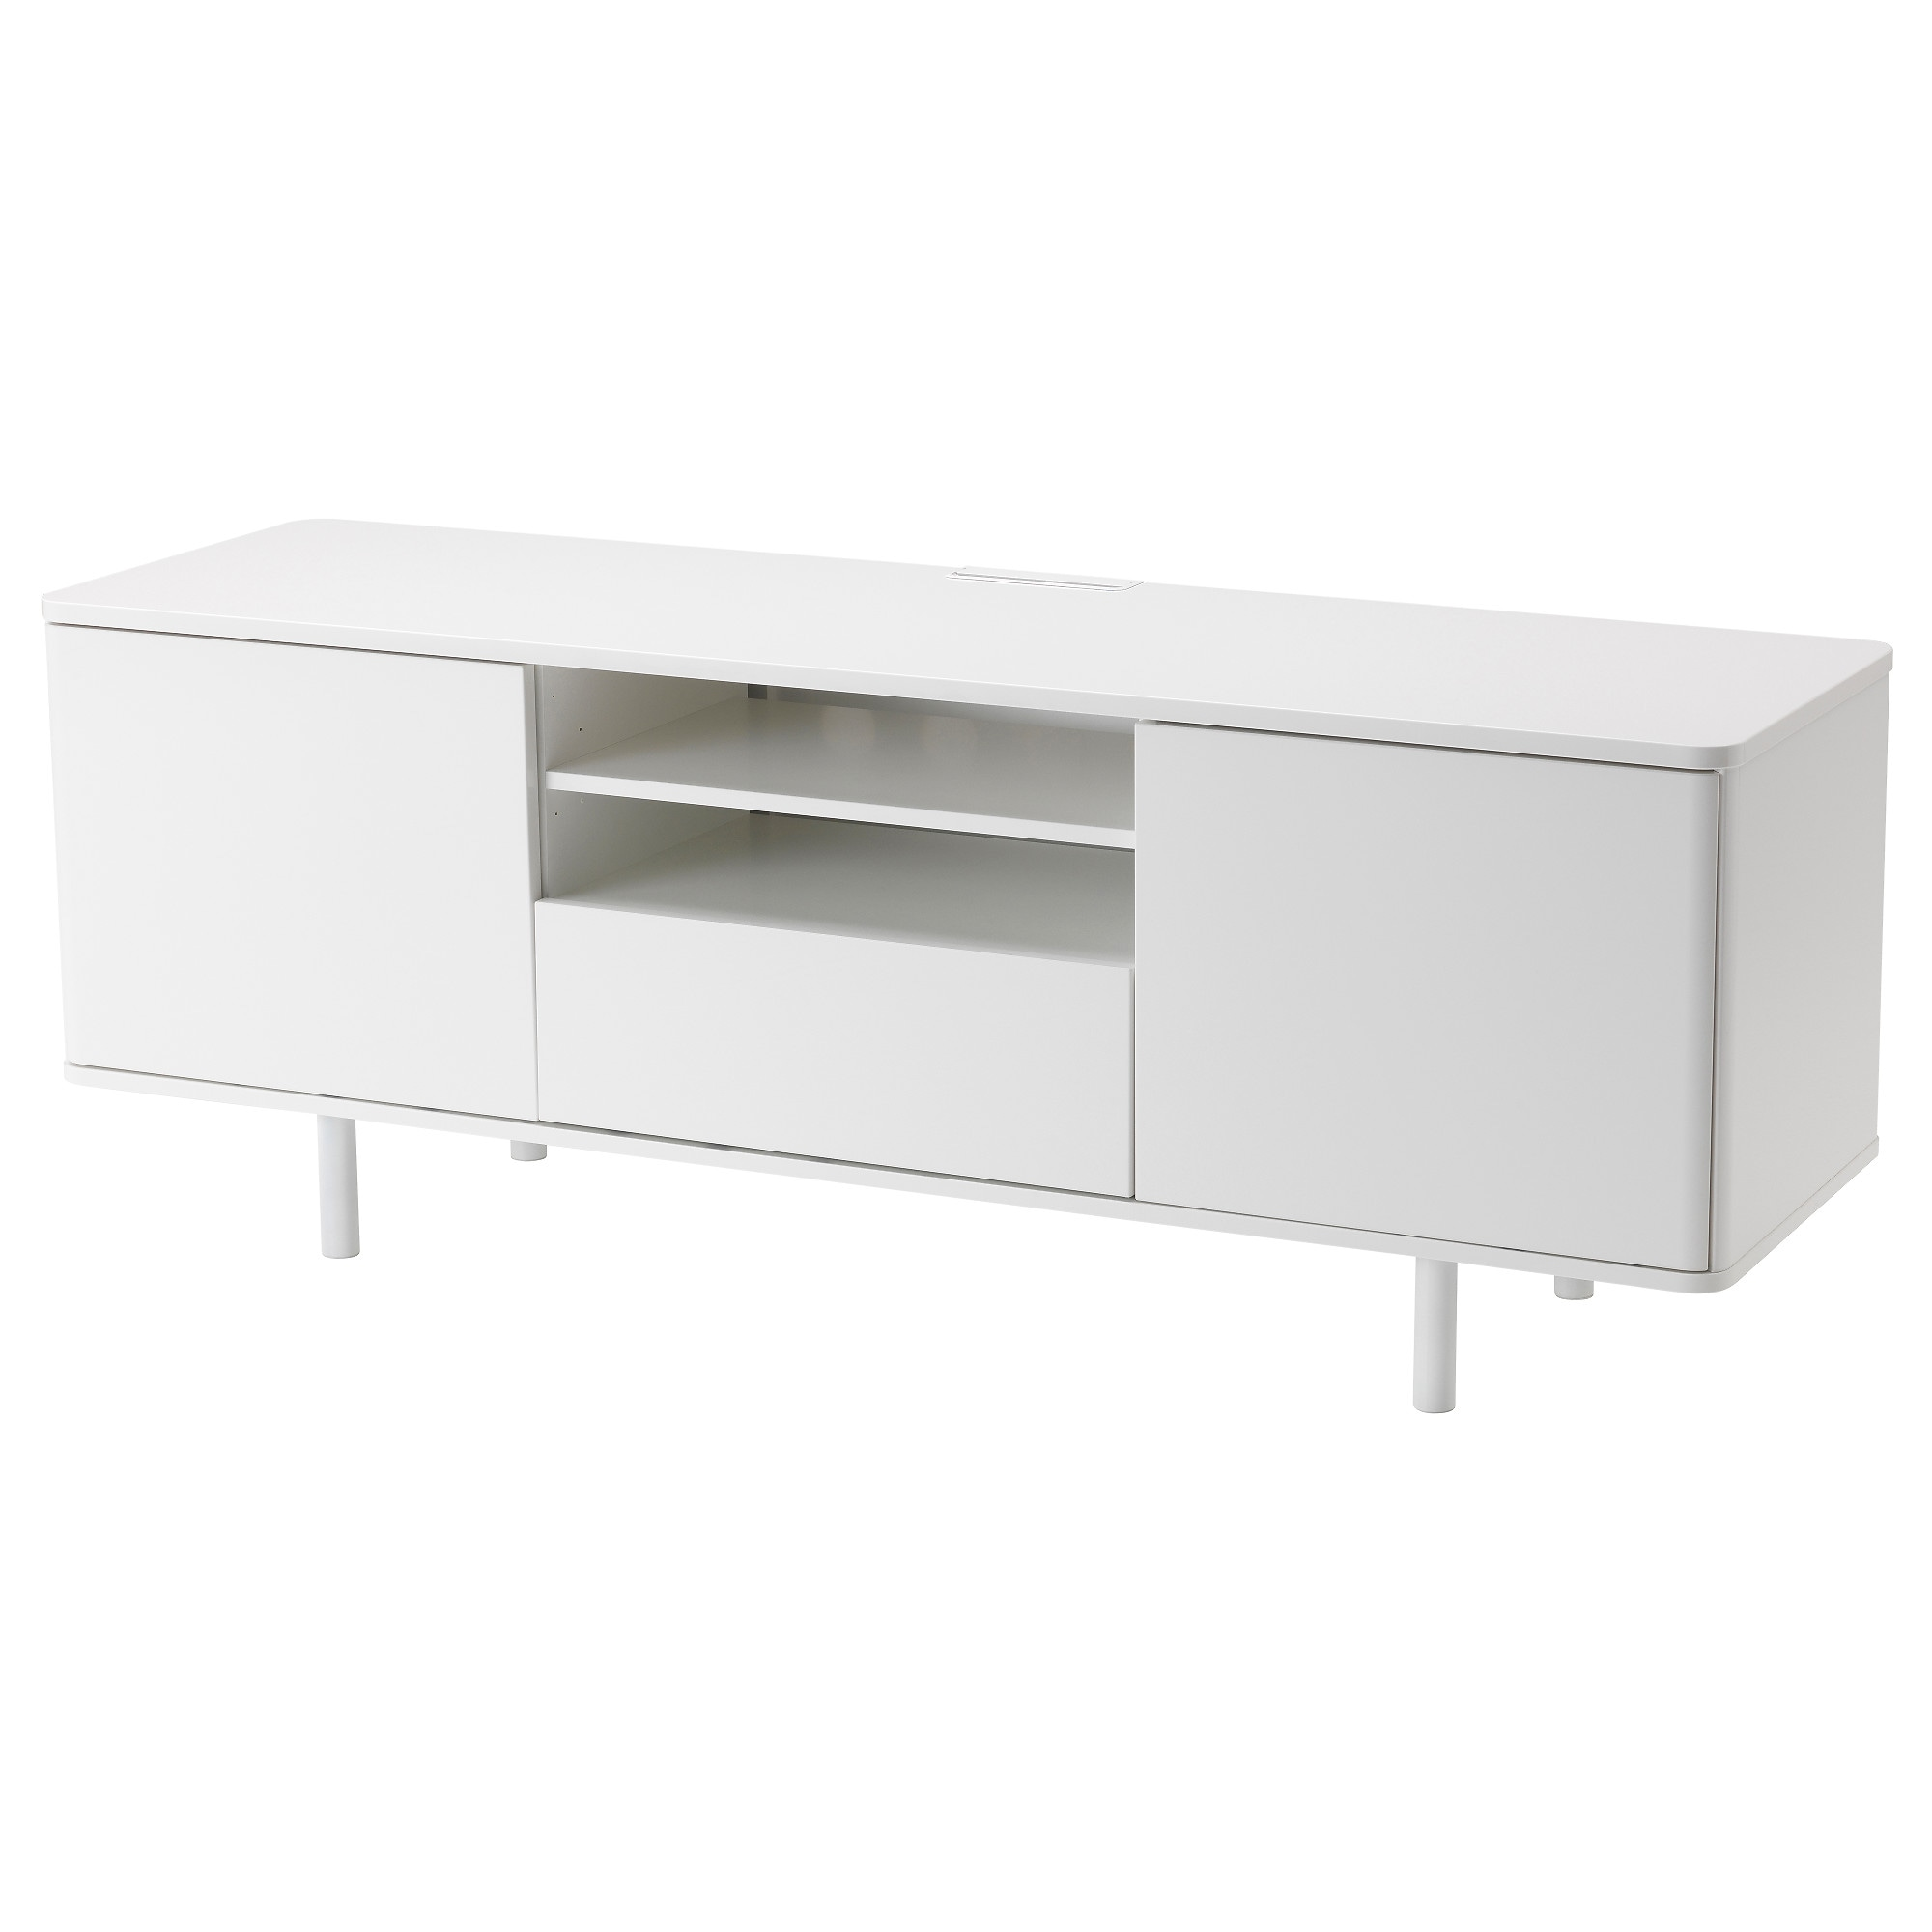 Plateau Rotatif Tv Ikea Excellent Attractive Plateau Tournant Tv  # Support De Tele Ikea